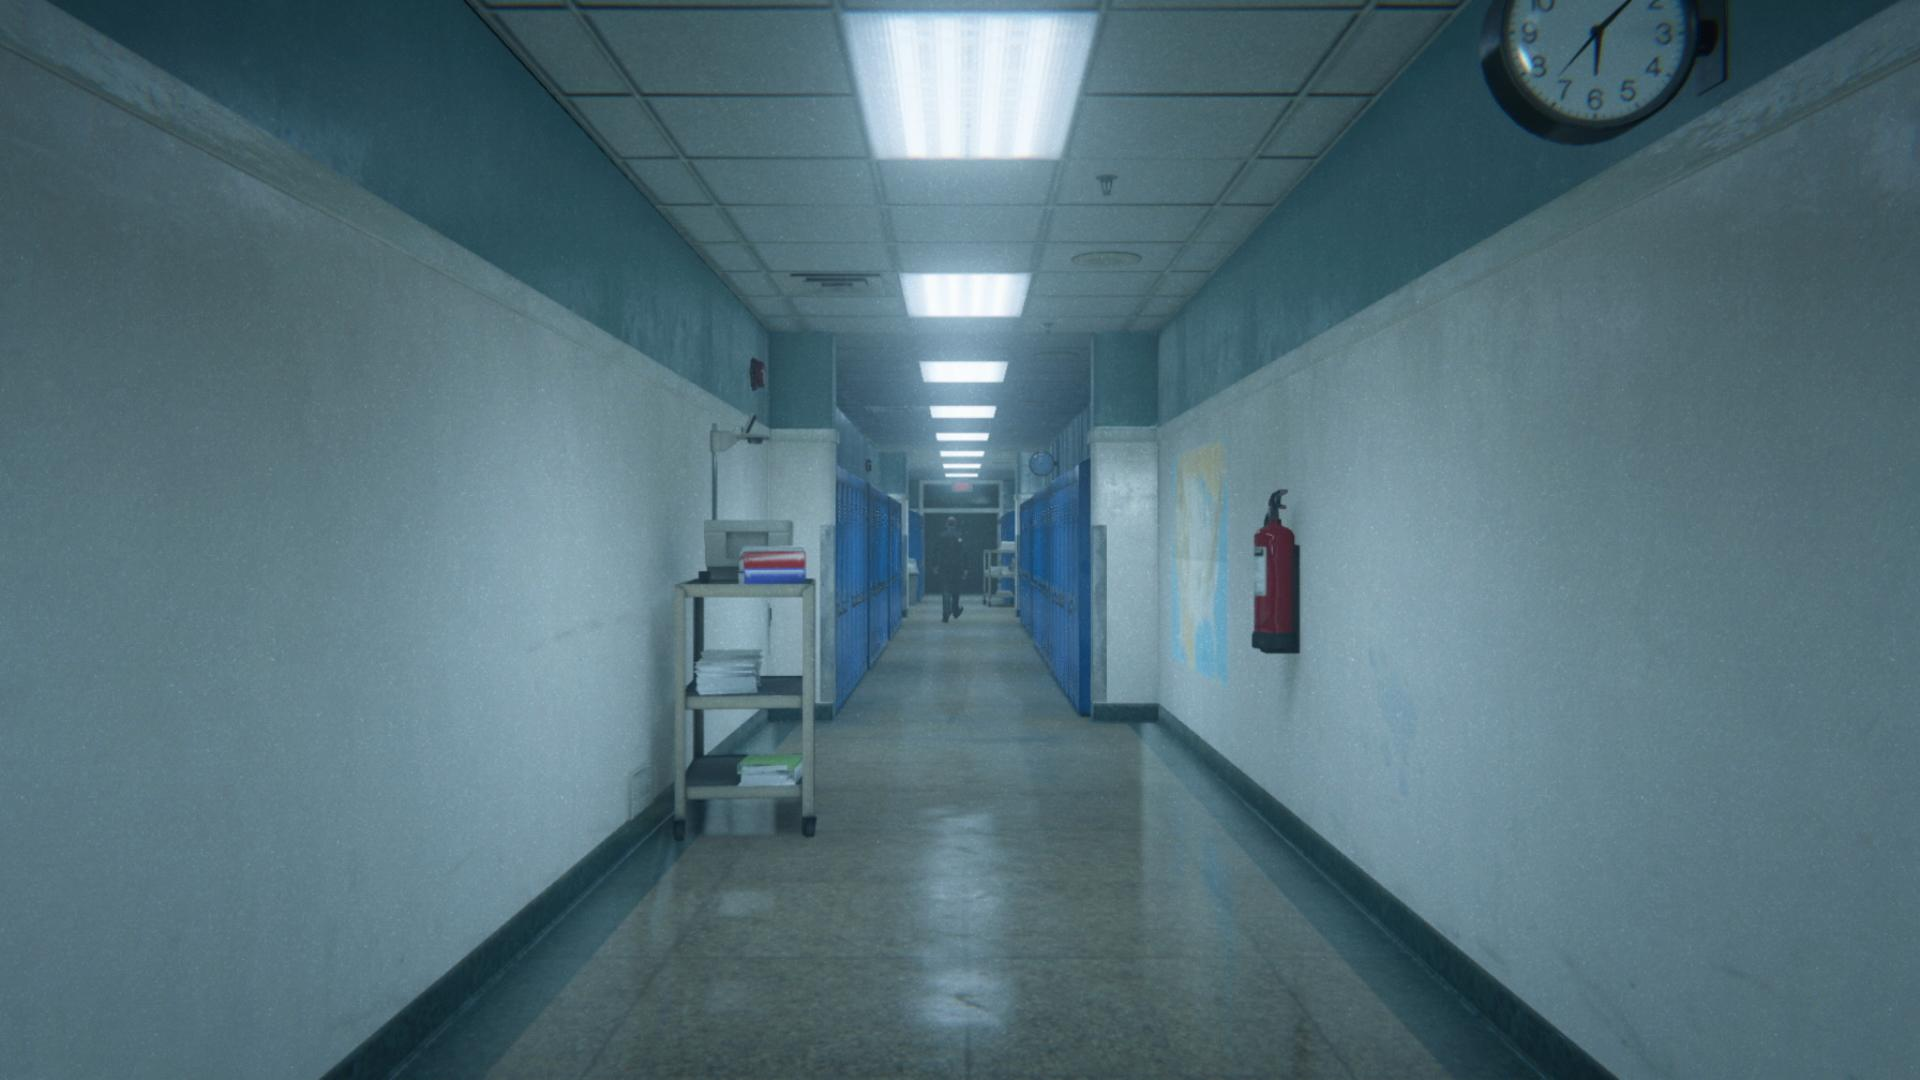 Believe it or not this is a screenshot from Outlast 2 on the Nintendo Switch – powered by a scaled-down version of the Unreal Engine